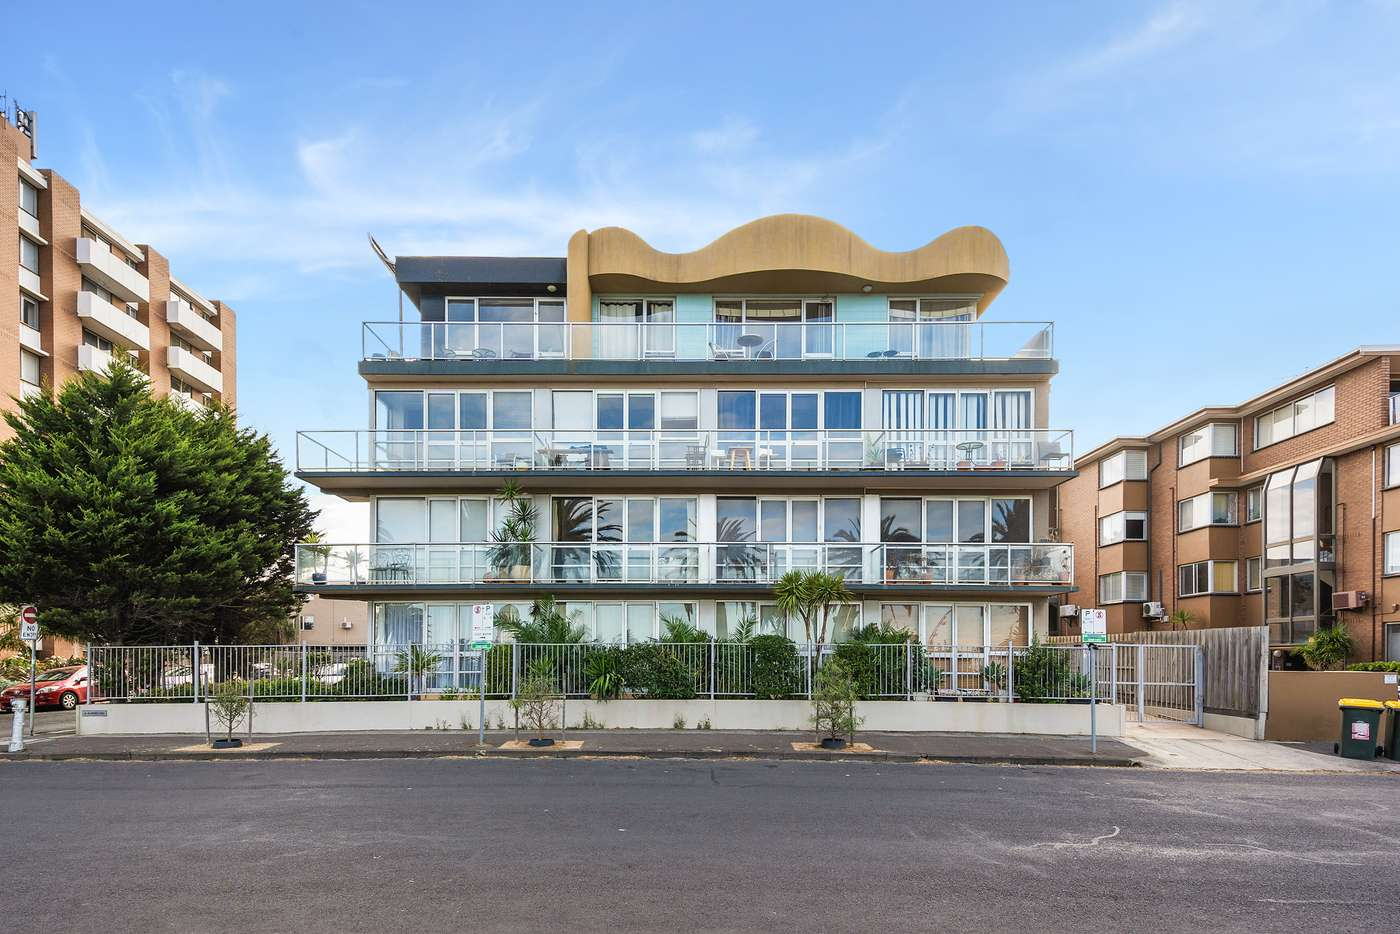 Main view of Homely studio listing, 11/4 Alfred Square, St Kilda VIC 3182